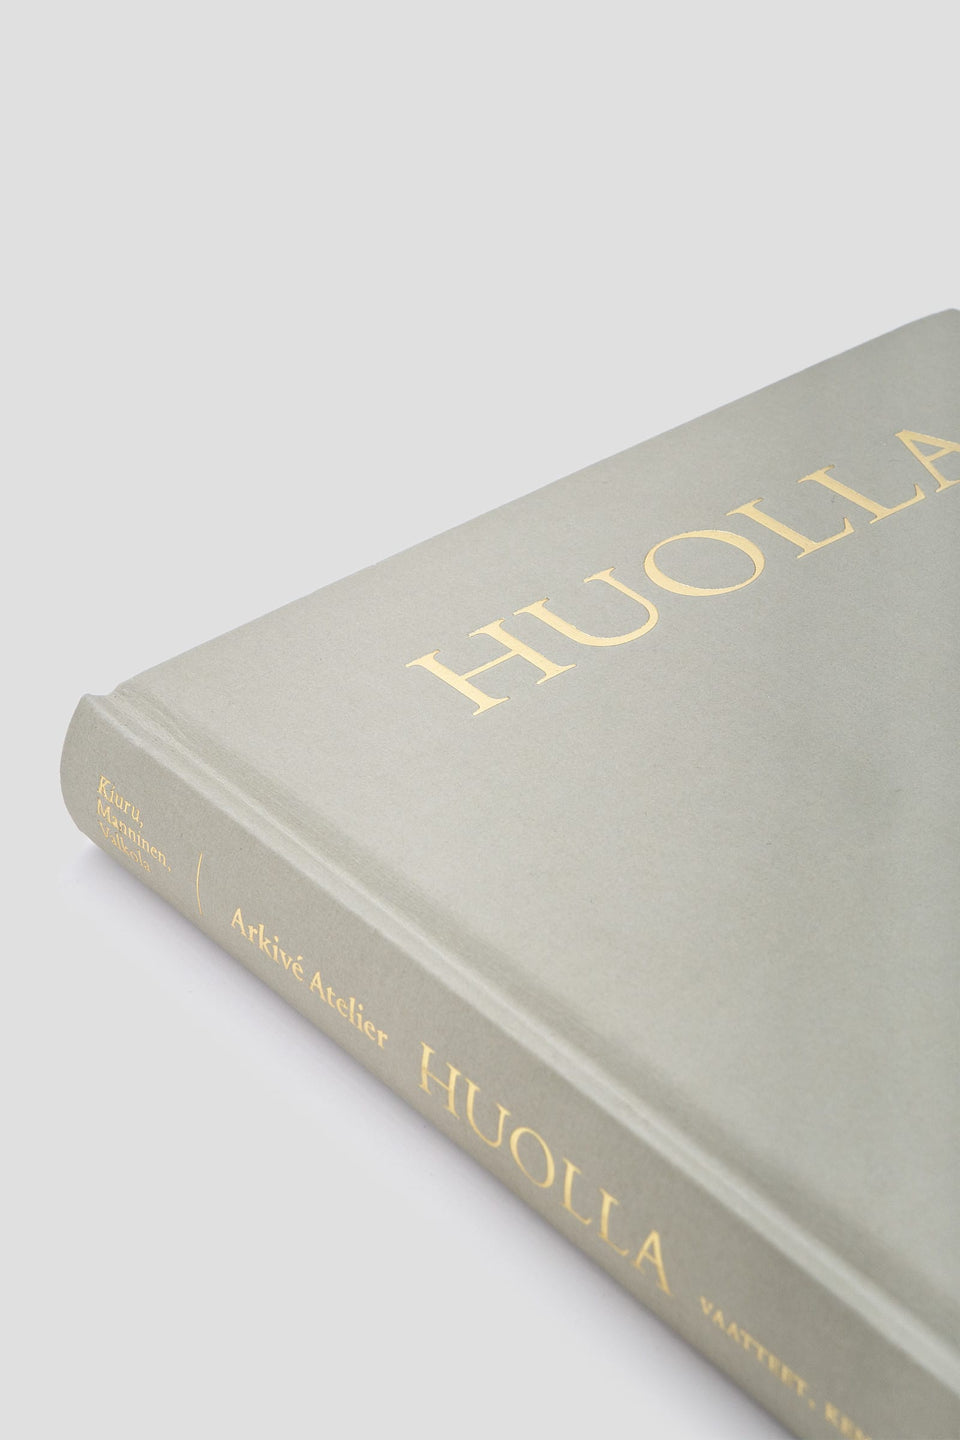 Huolla Book by Arkivé Atelier